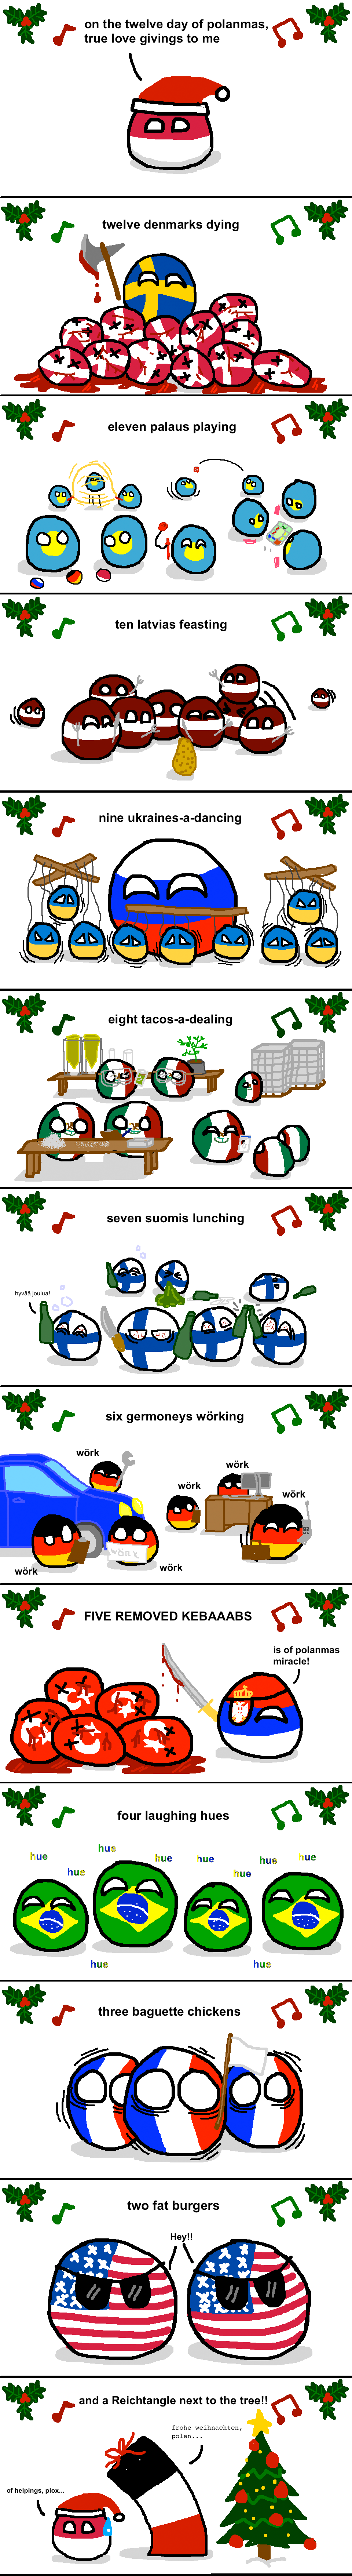 12 days of christmaspng